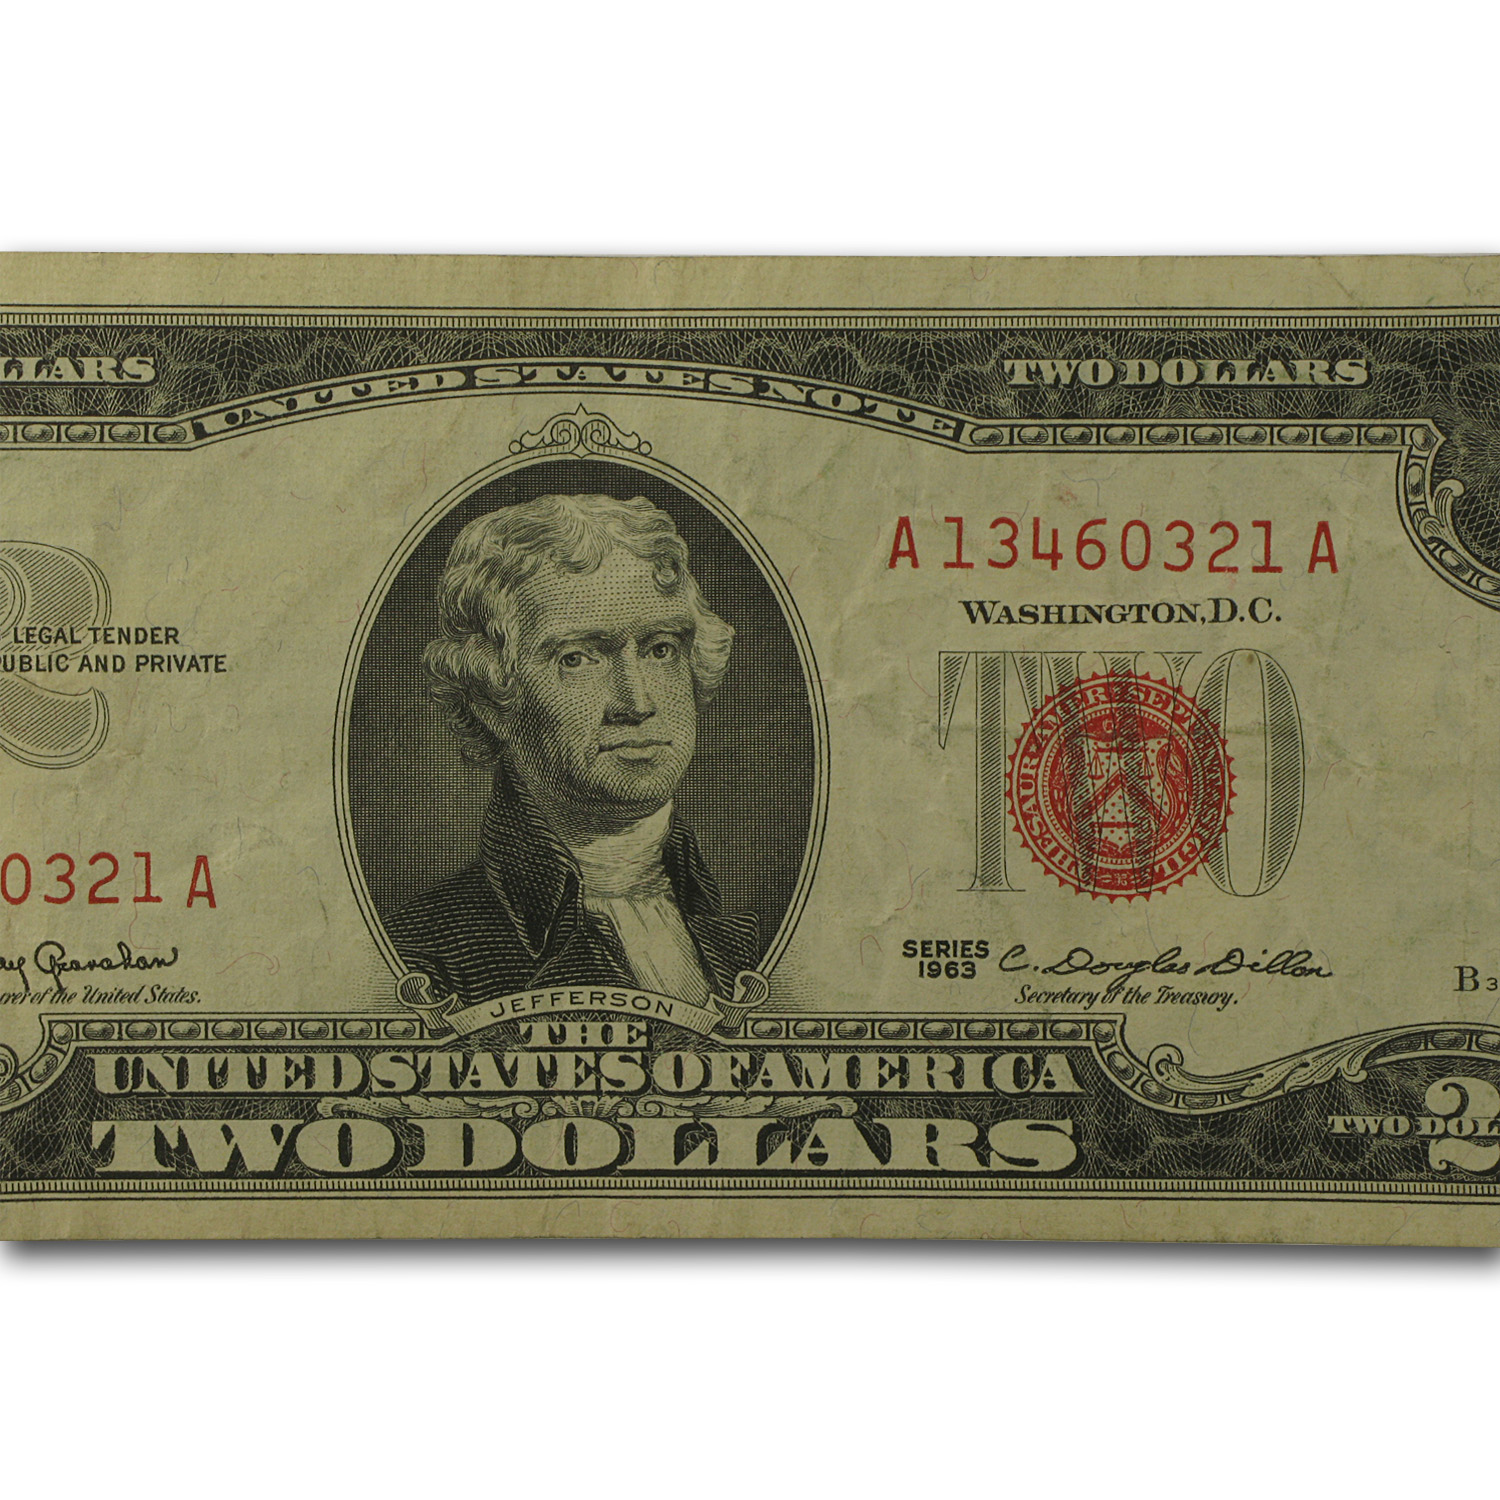 1963-1963-A $2.00 U.S. Notes Red Seal VG/VF